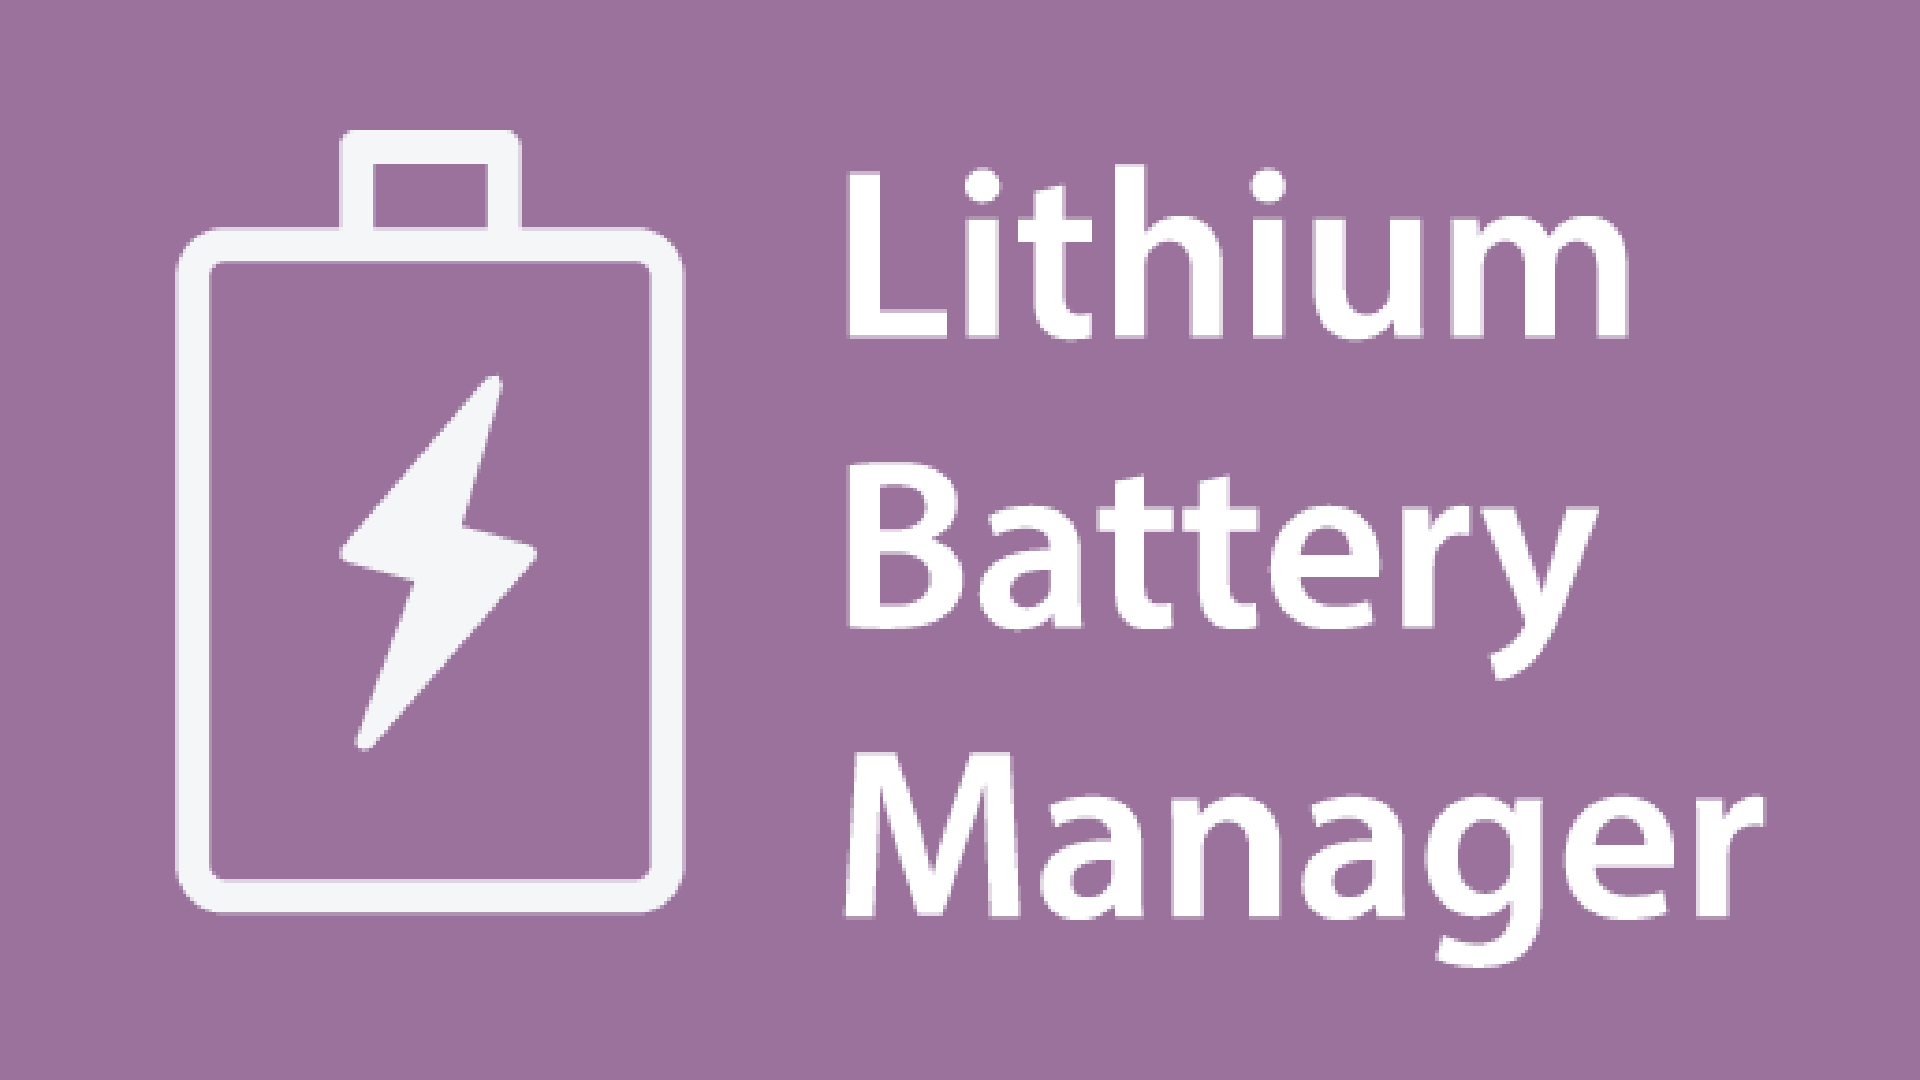 imeon_application_lithium_battery_manager